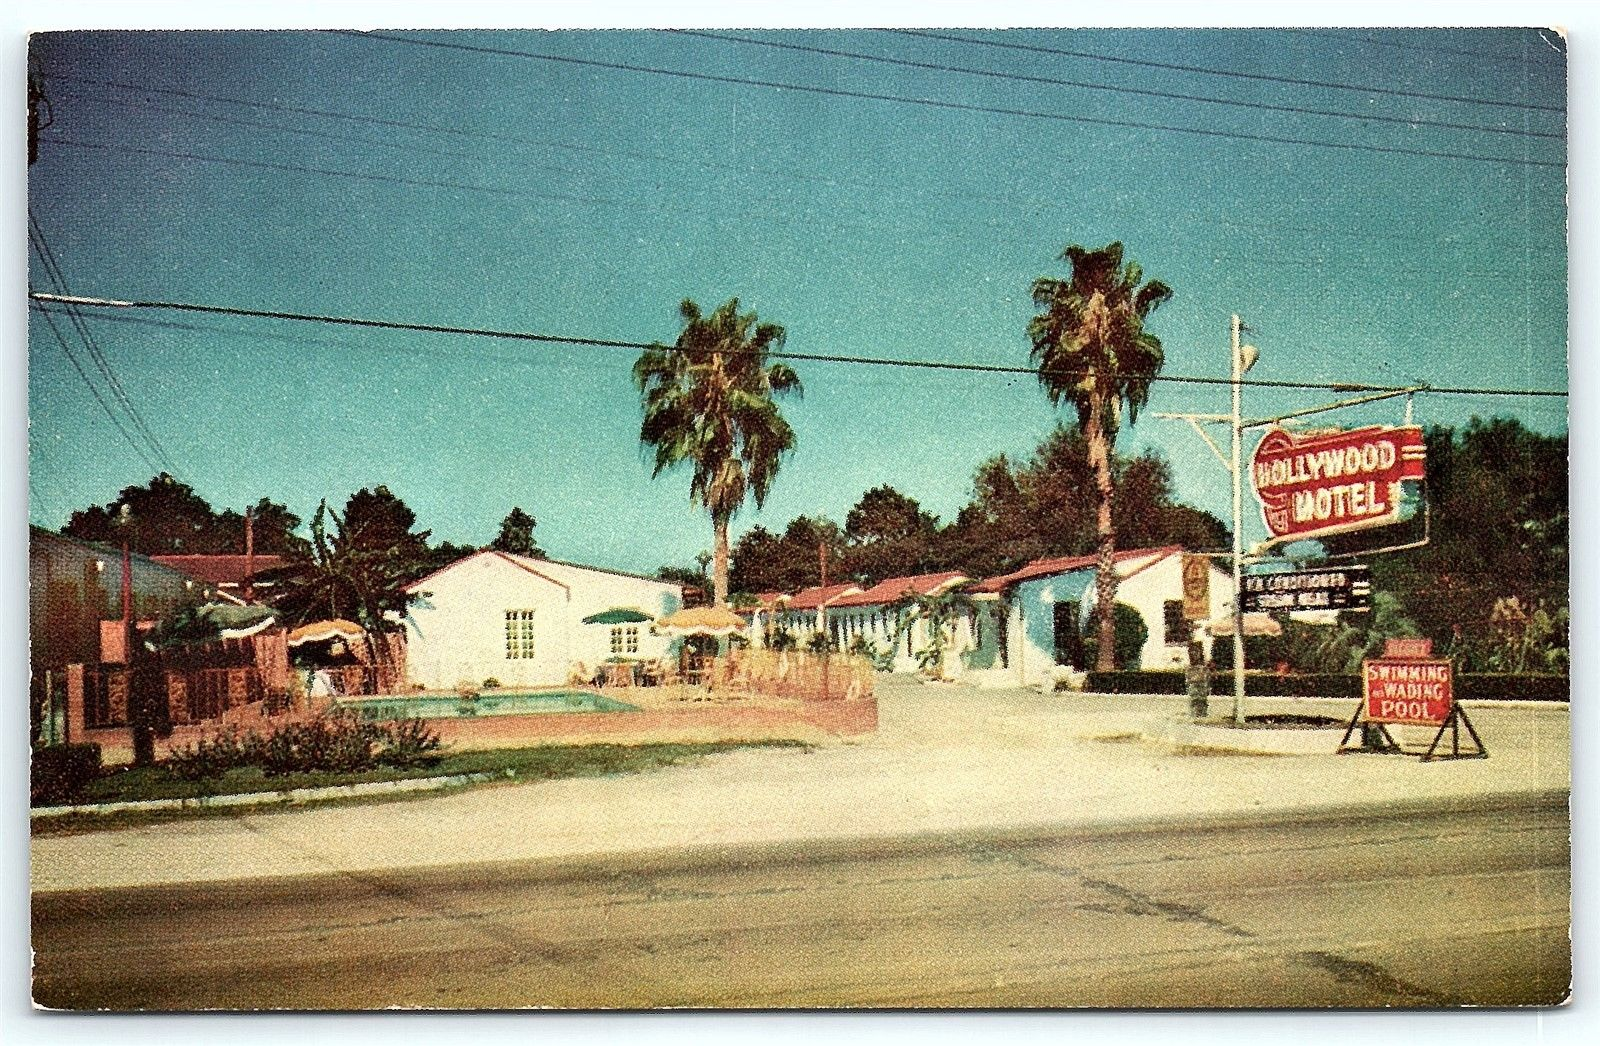 Hollywood Motel Postcard La Baton Rouge Hollywood Motel Chef Menteur Highway R24